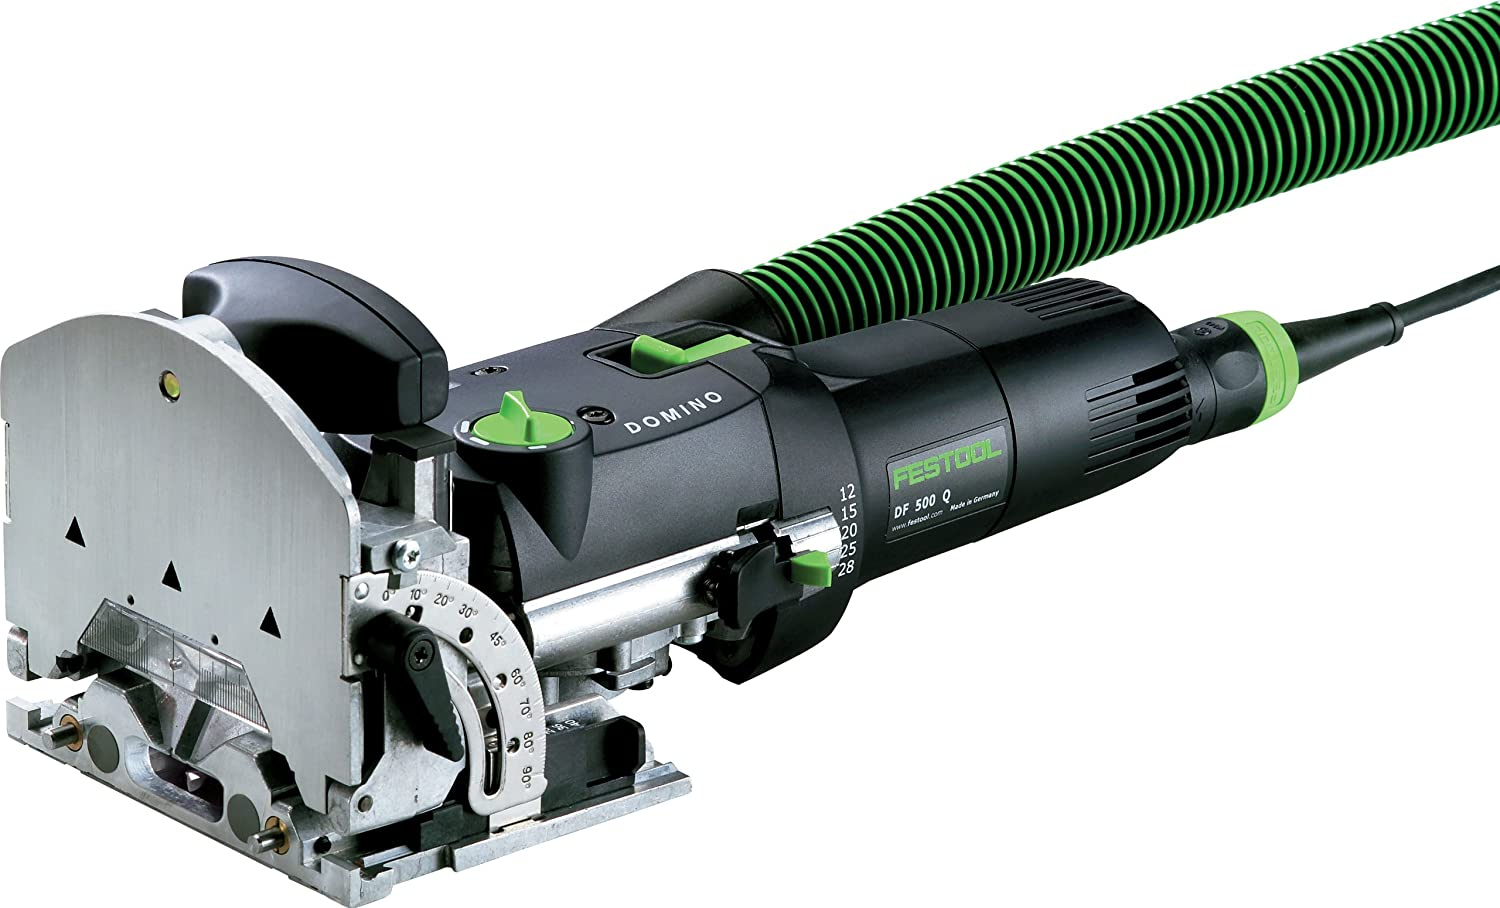 Festool 574432 Domino Joiner DF 500 Q